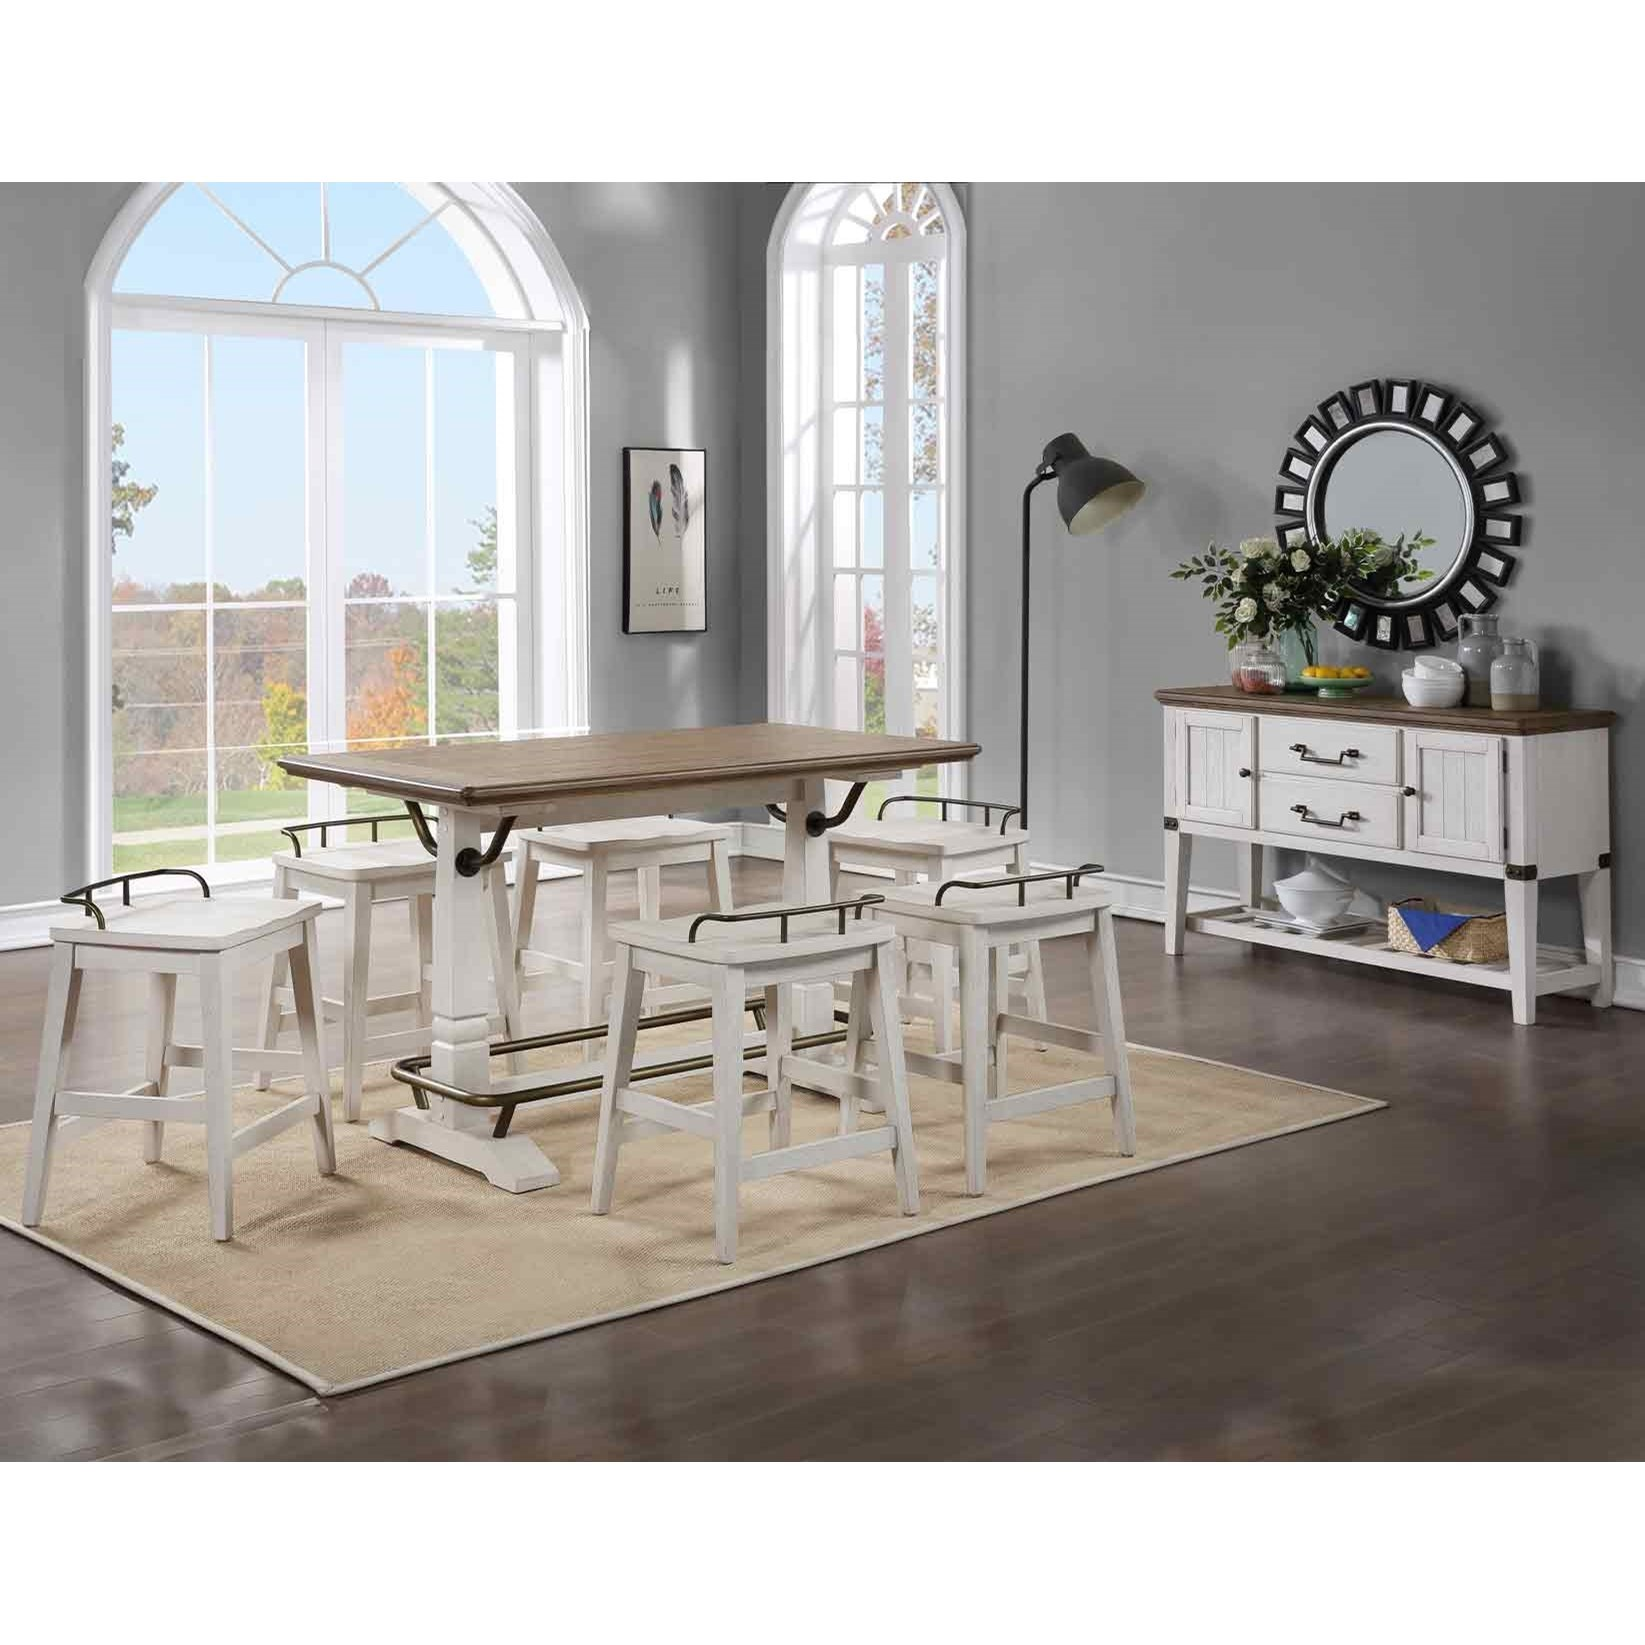 Pendleton Formal Dining Room Group  by Steve Silver at Northeast Factory Direct